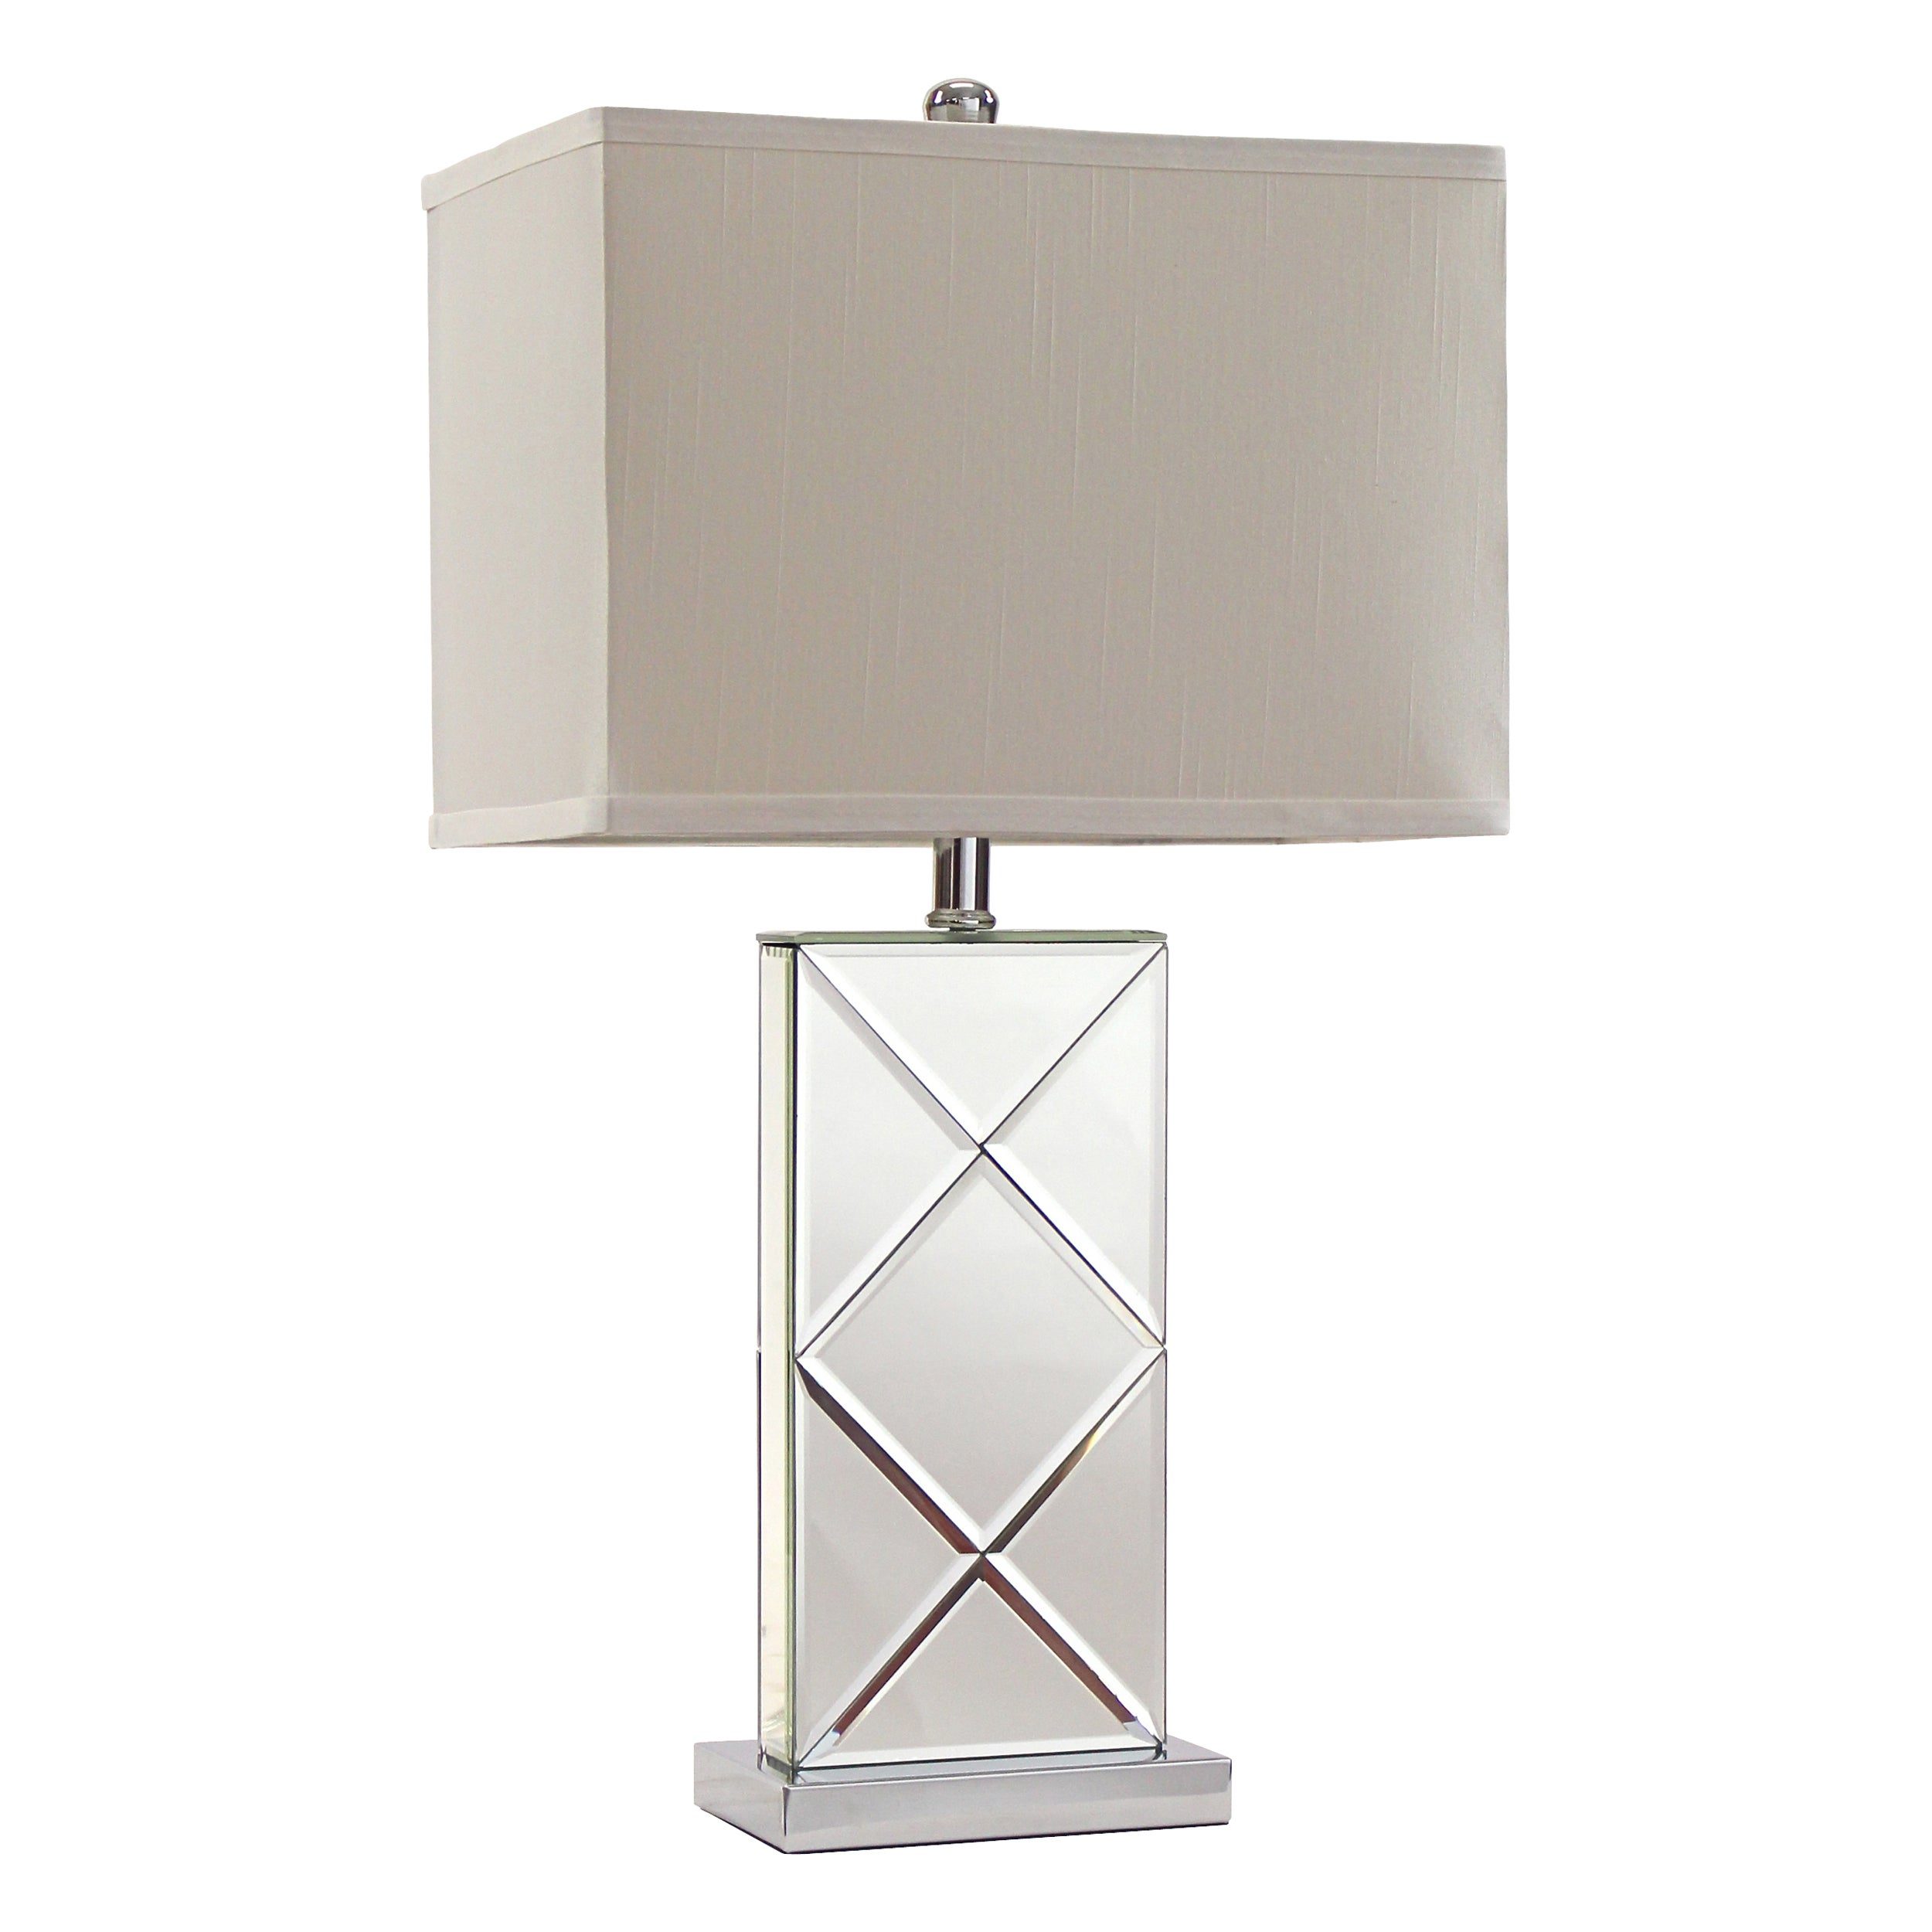 Rory Mirrored Table Lamp Set Of 2 Free Shipping Today 13982342